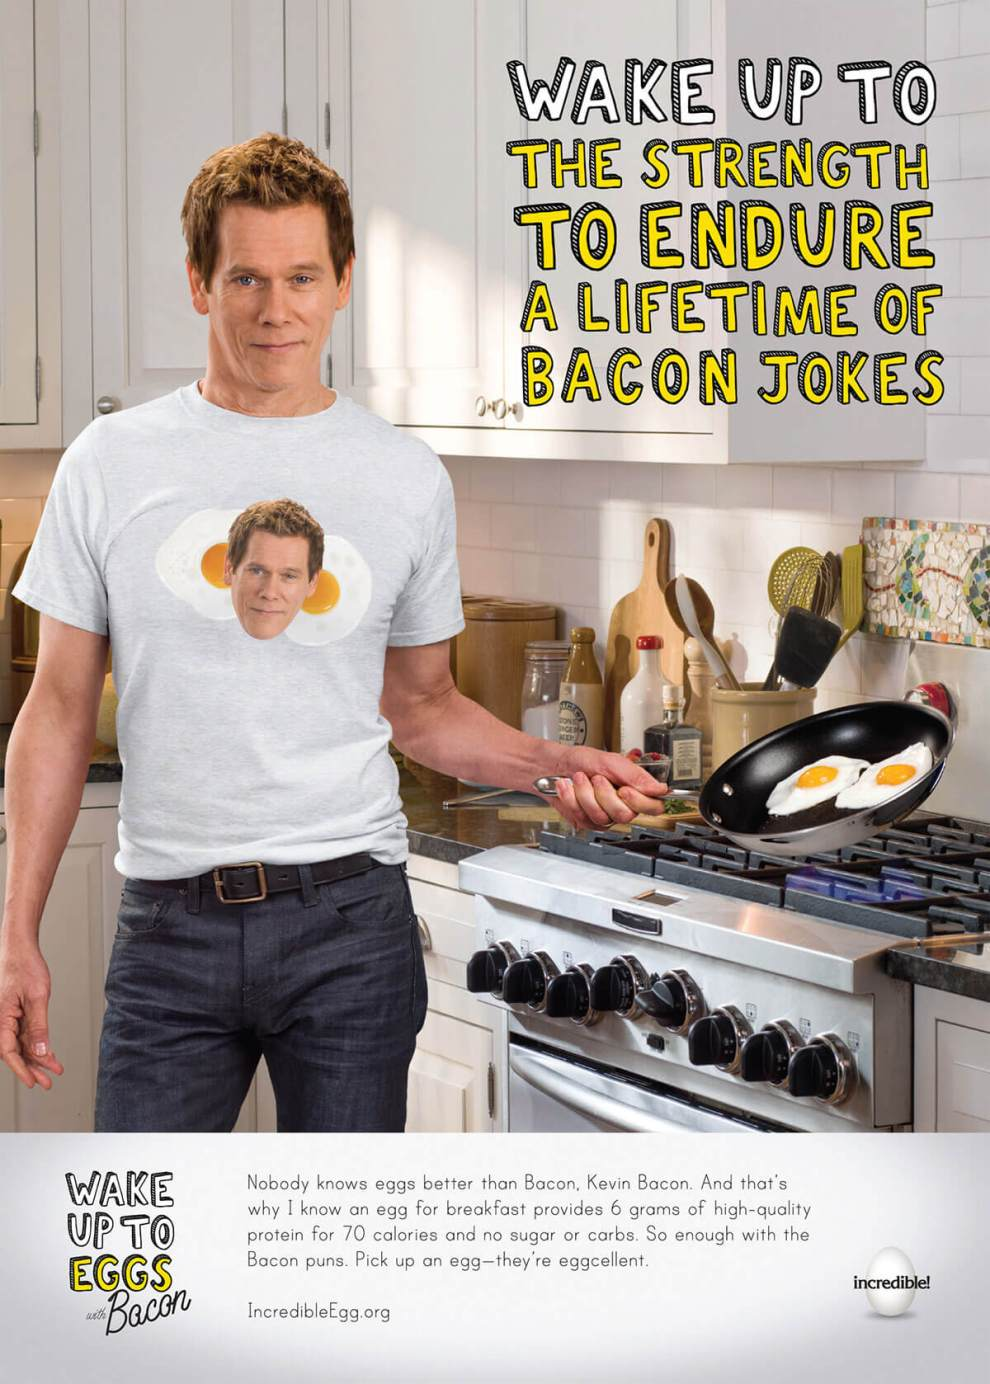 American Egg Board wants you to take up to eggs and... Kevin Bacon